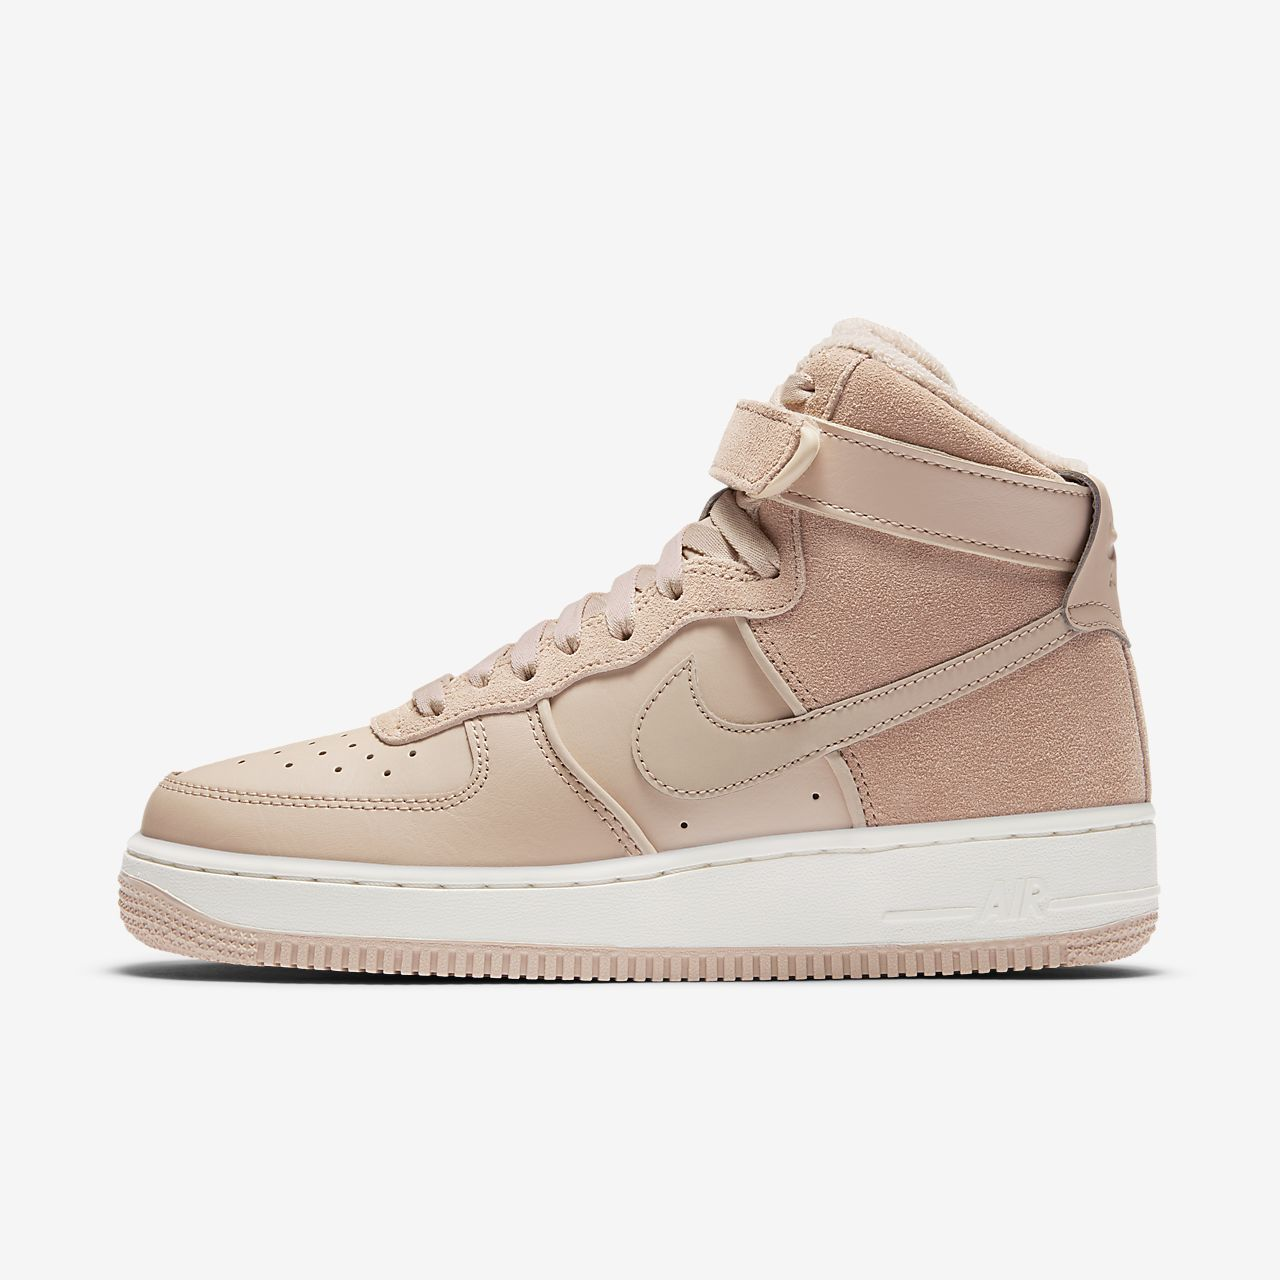 a4ef986b63d3 Nike Air Force 1 High Winterized Women s Shoe. Nike.com AT